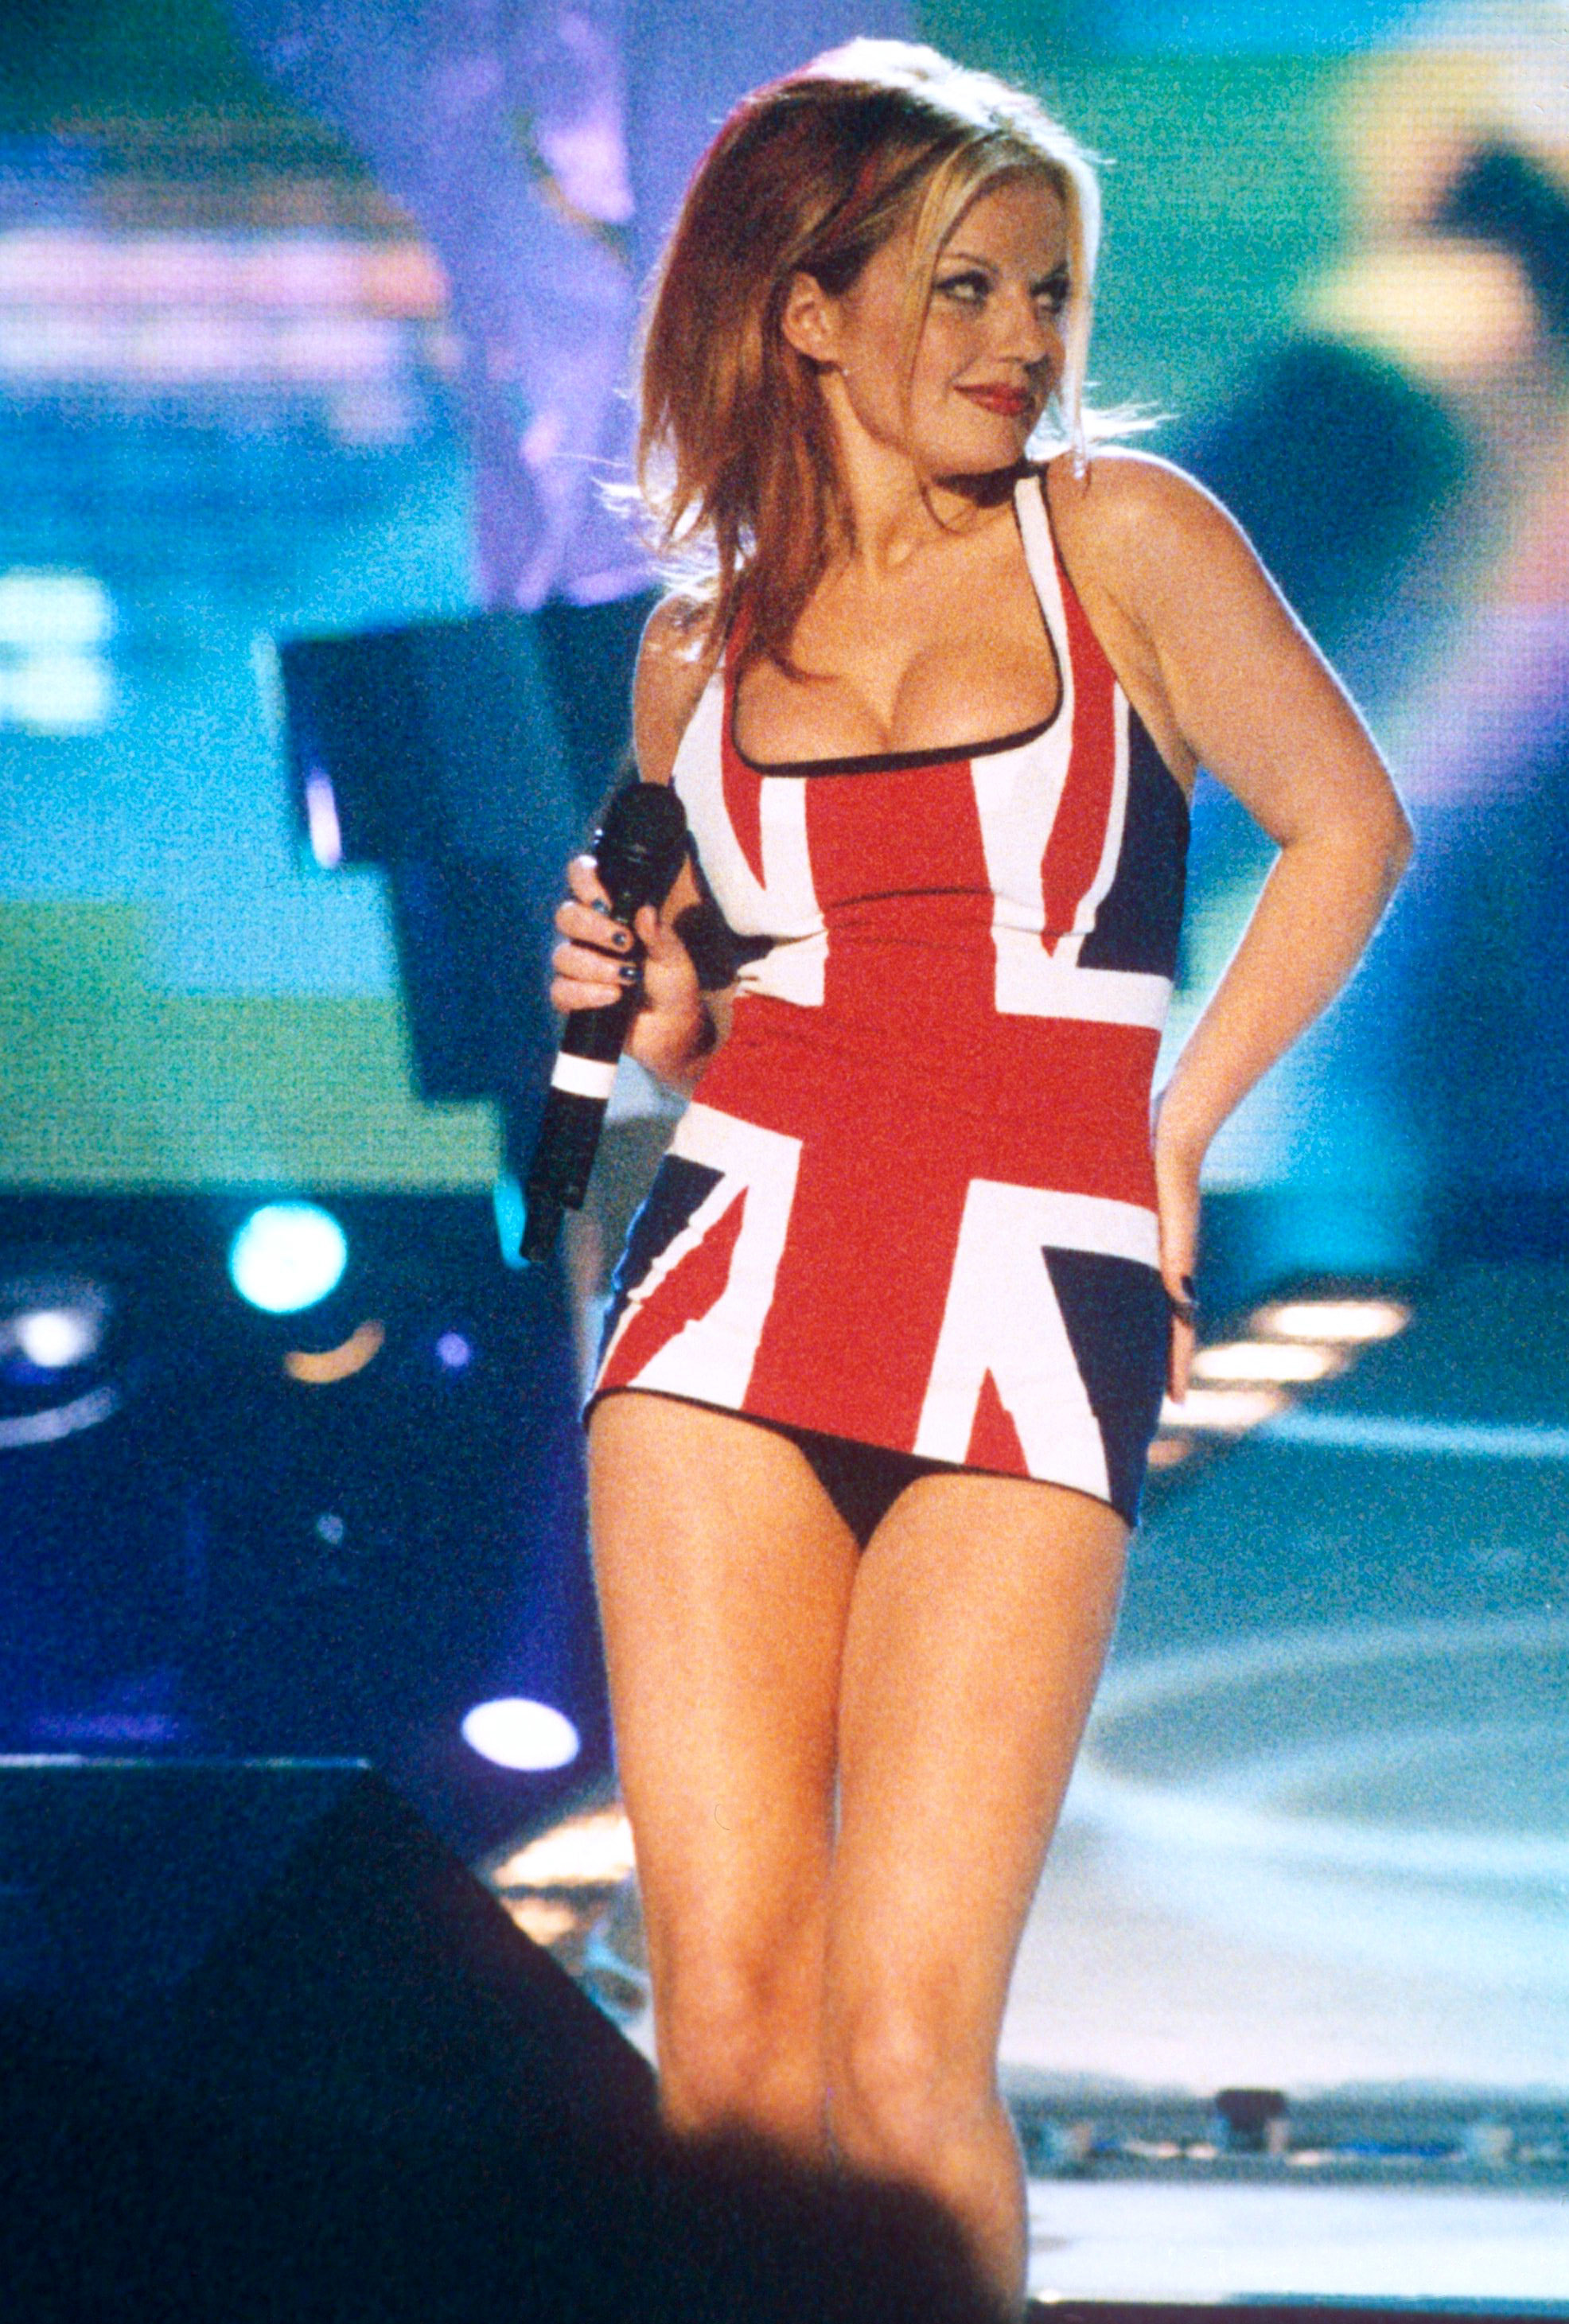 4. She's a Spice Girls superfan... and was heartbroken when Geri quit